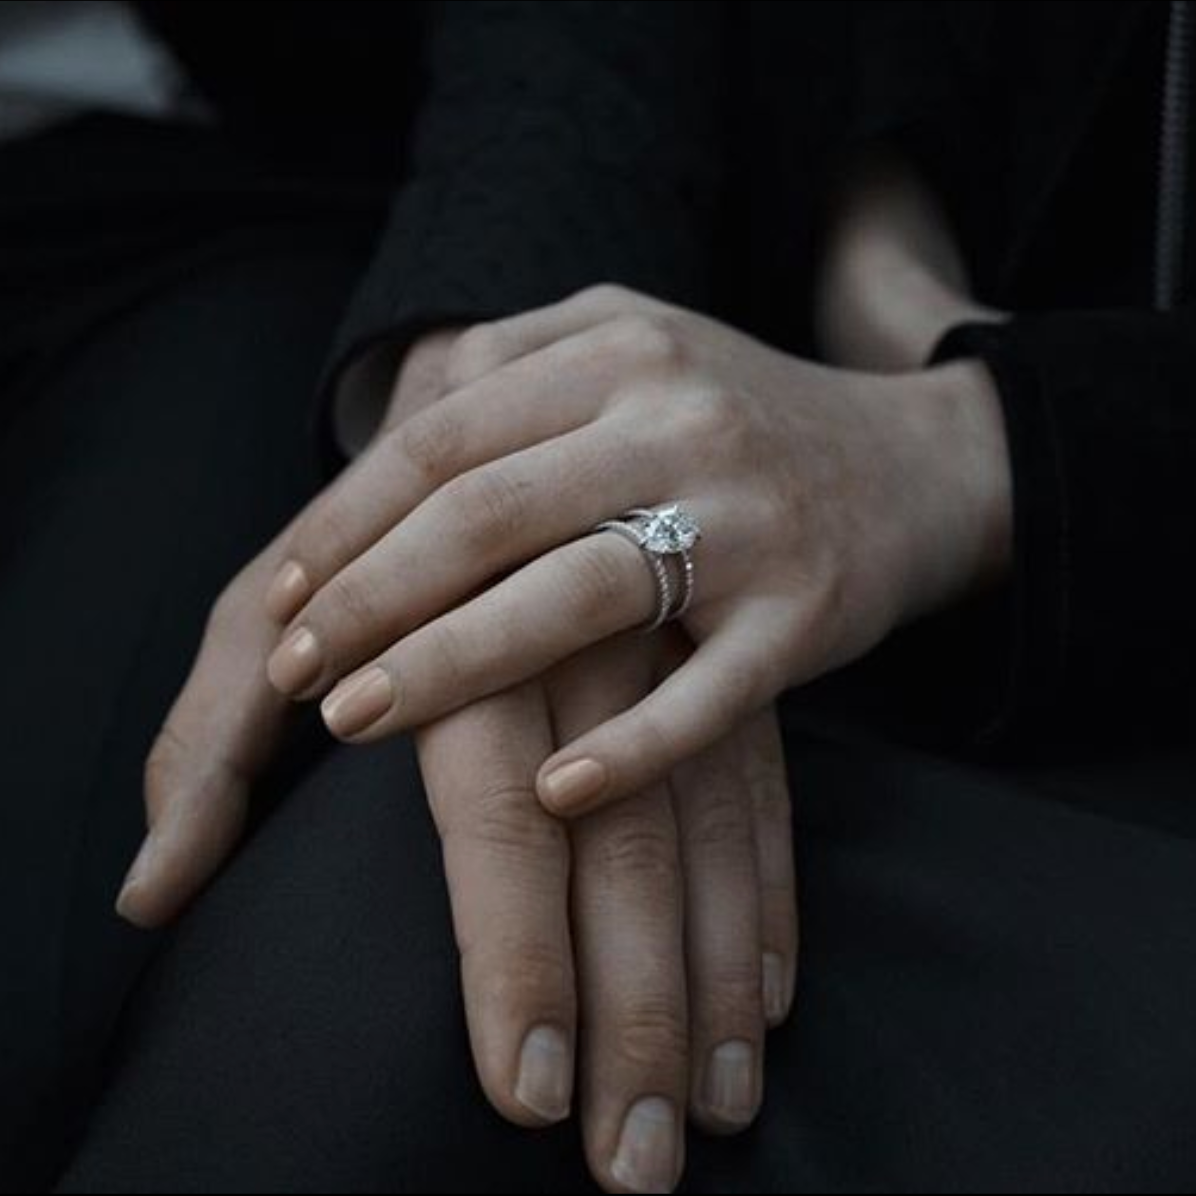 'I Said Yes' Game of Thrones'  Sophie Turner 's Instagram announcement